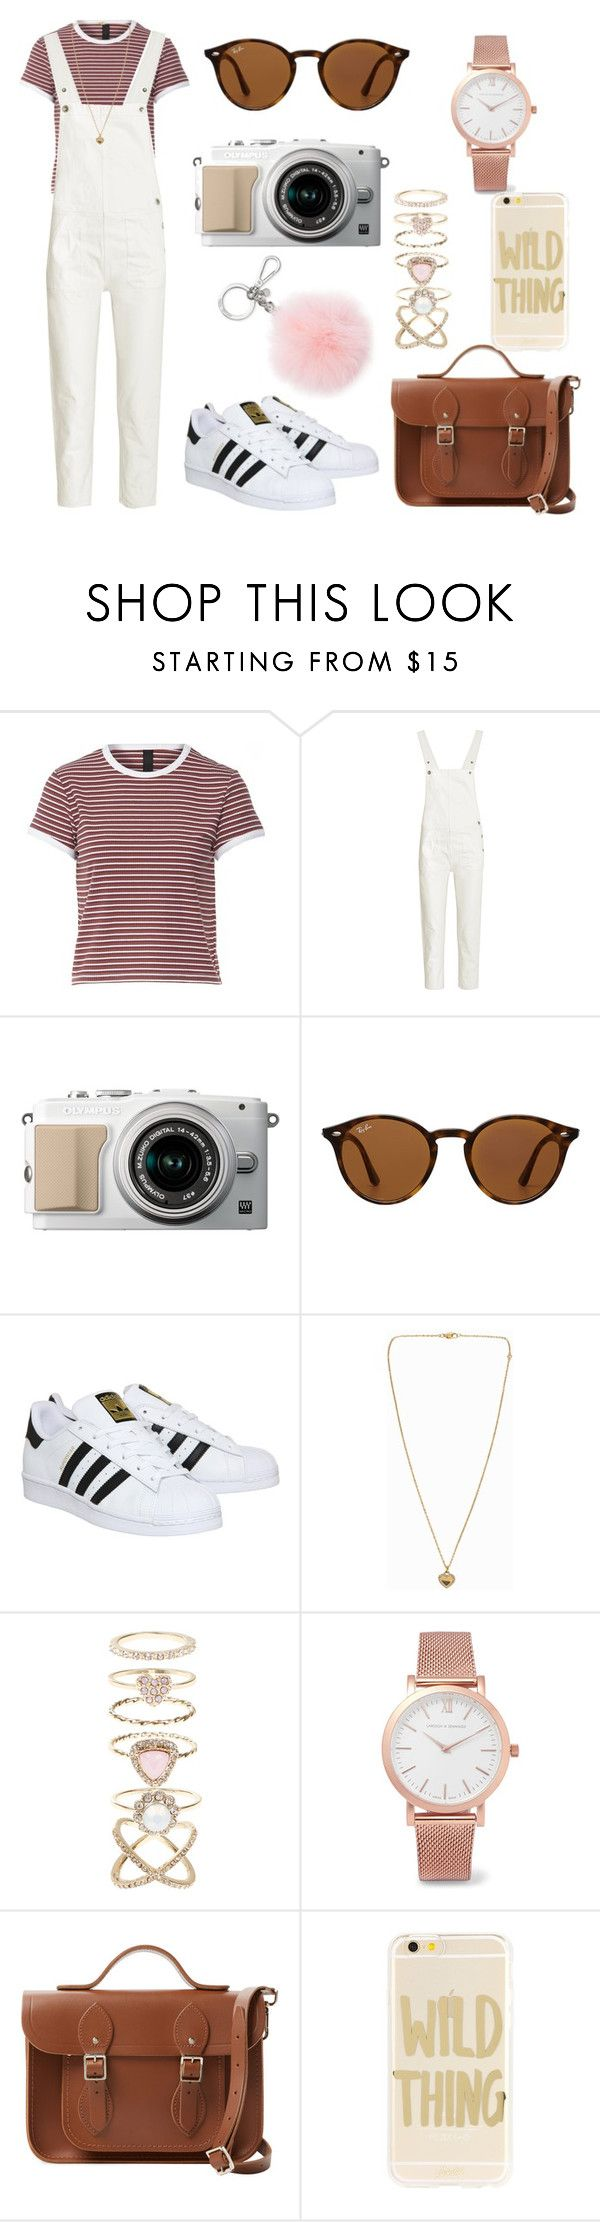 """Untitled #308"" by charlotte-down on Polyvore featuring M.i.h Jeans, Ray-Ban, adidas, Michael Kors, Accessorize, Larsson & Jennings, The Cambridge Satchel Company and Sonix"